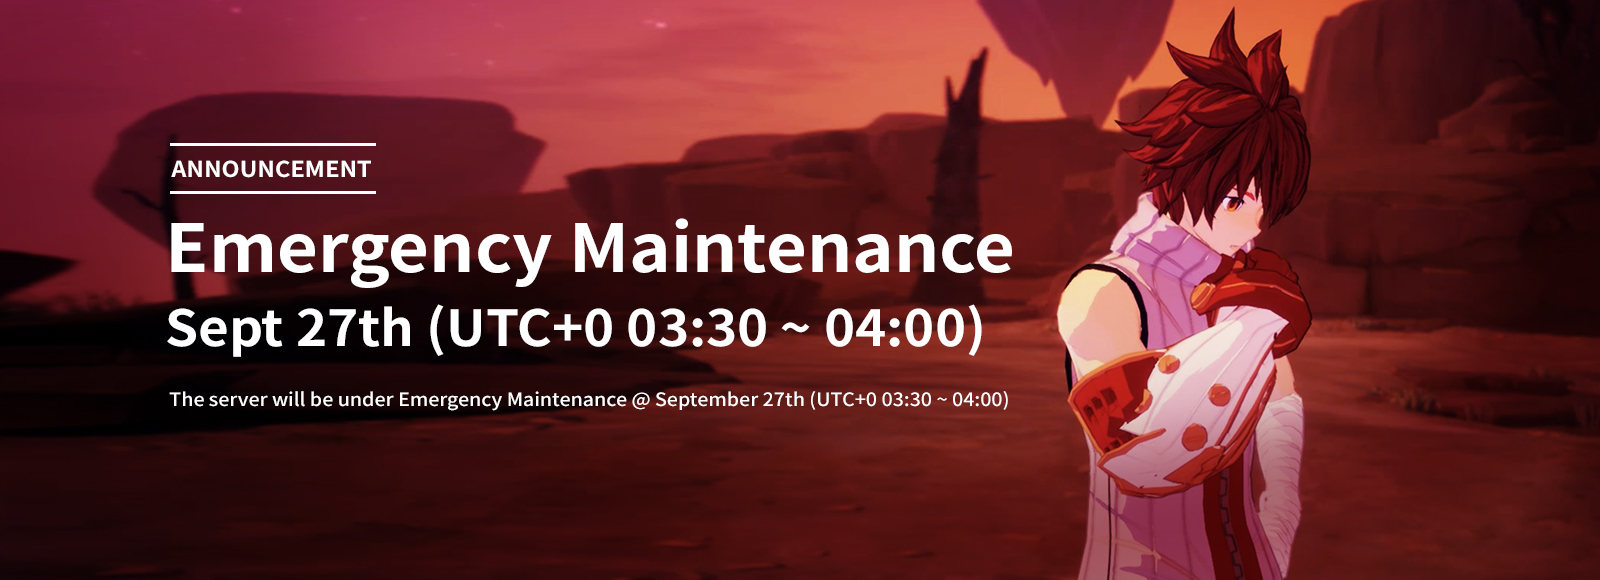 September 27th Emergency Maintenance Announcement